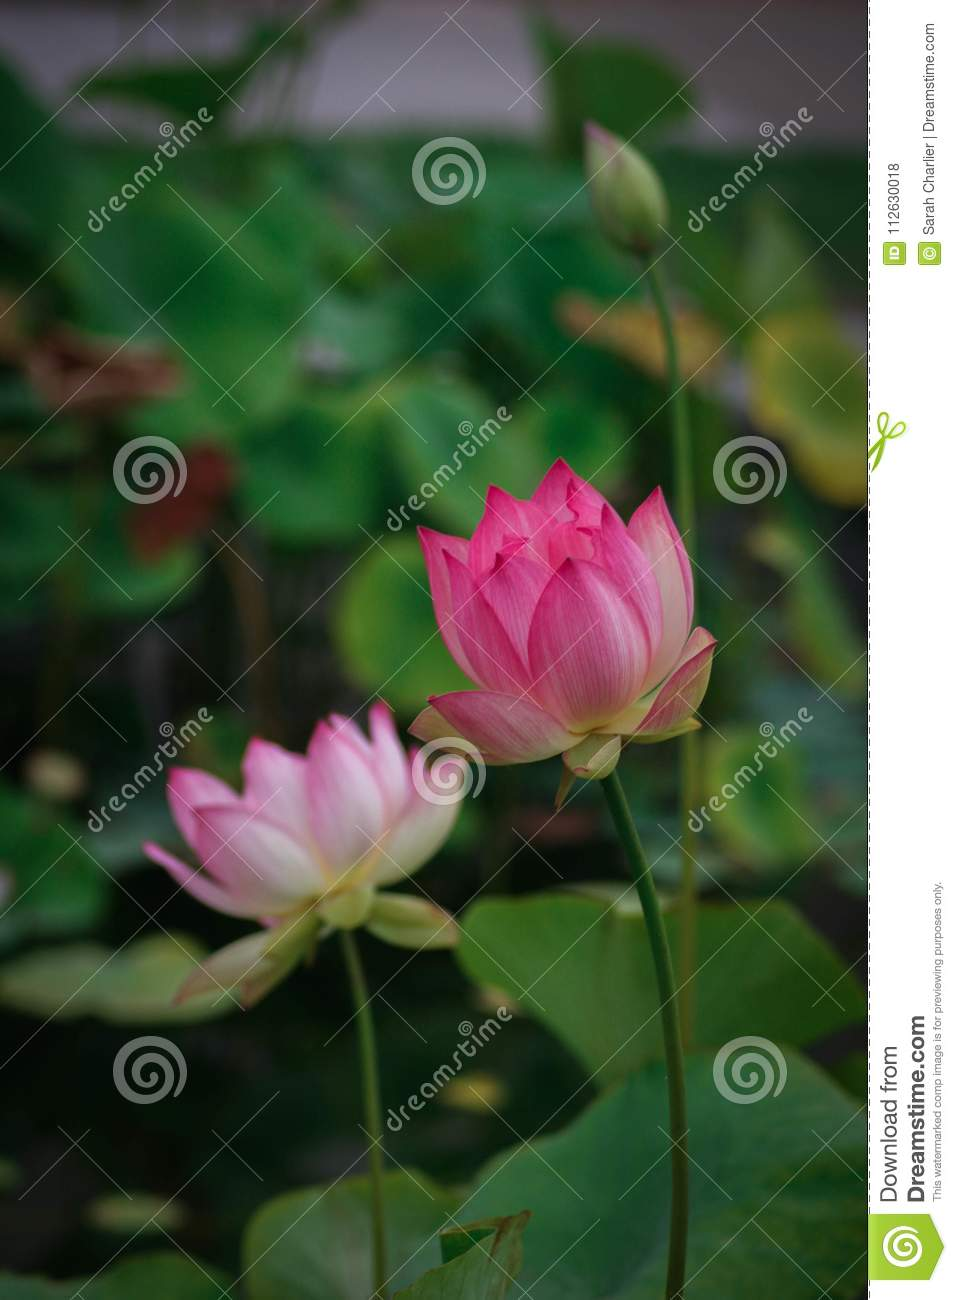 Lotus Flowers Symbolizing Growth And New Beginnings Stock Photo